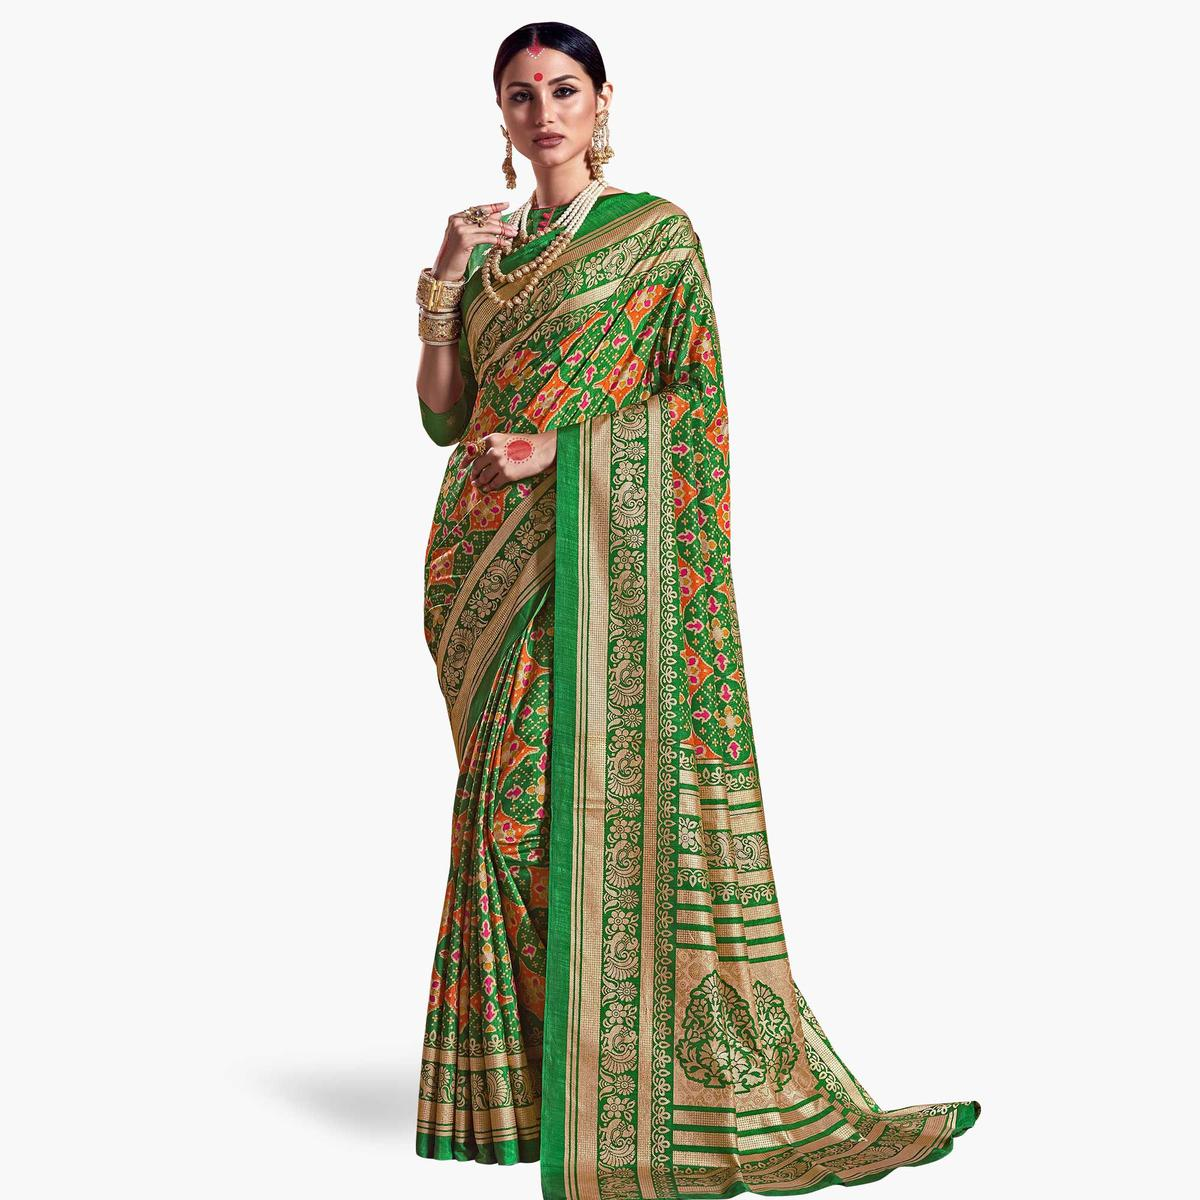 Sophisticated Green Colored Festive Wear Printed Kanjivaram Silk Saree